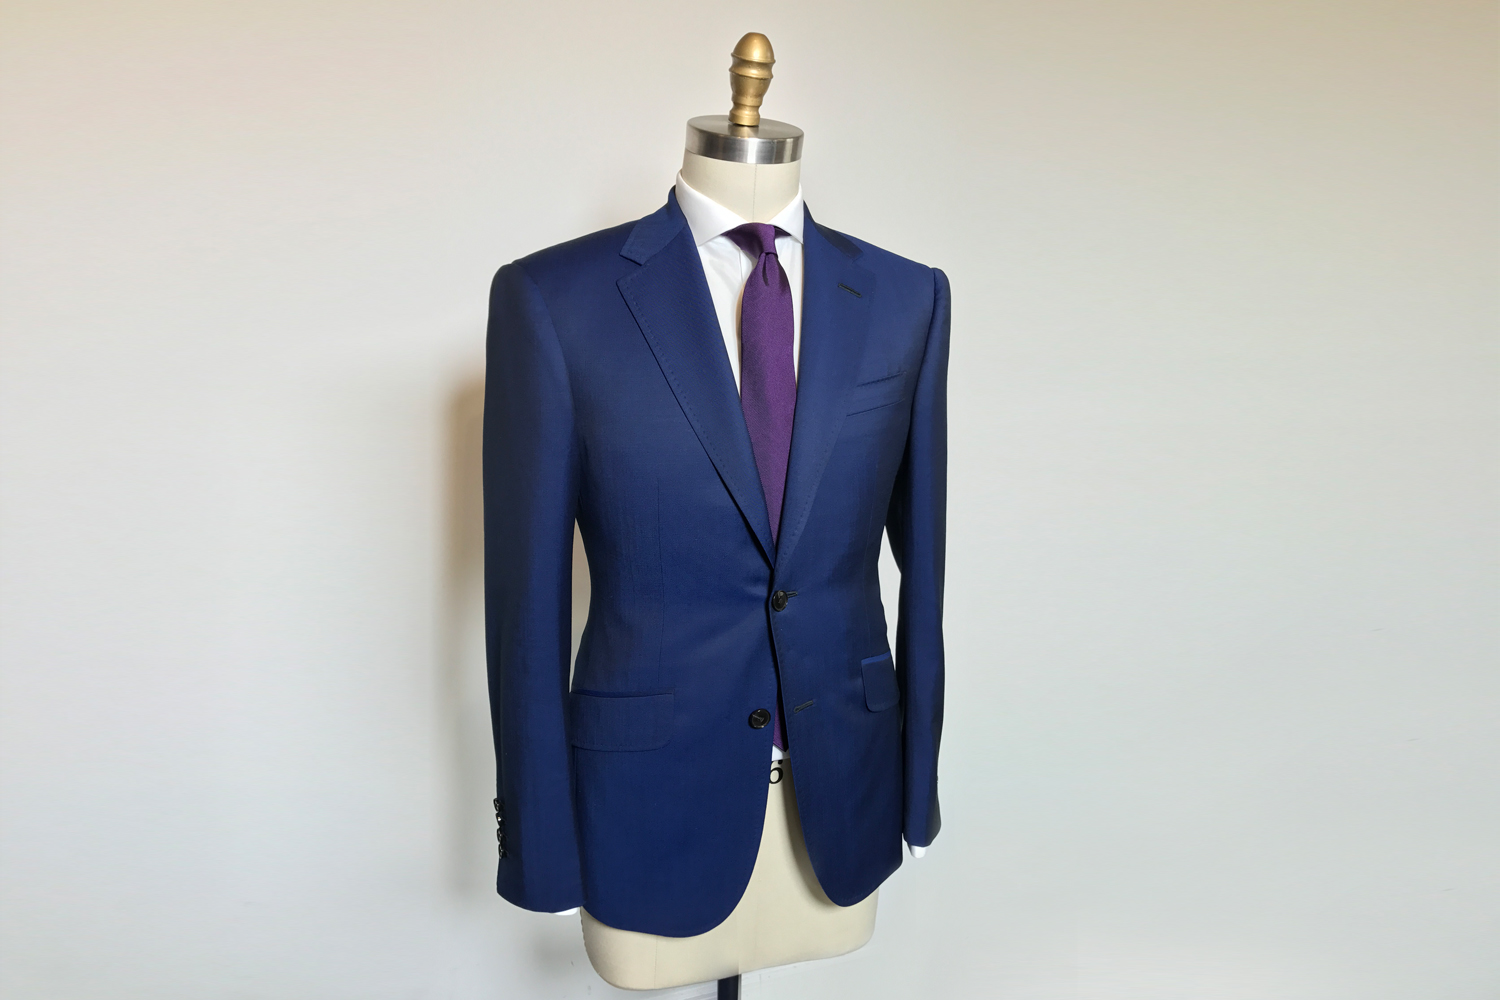 does anyone here have a suit made with scabal heroic fabric?